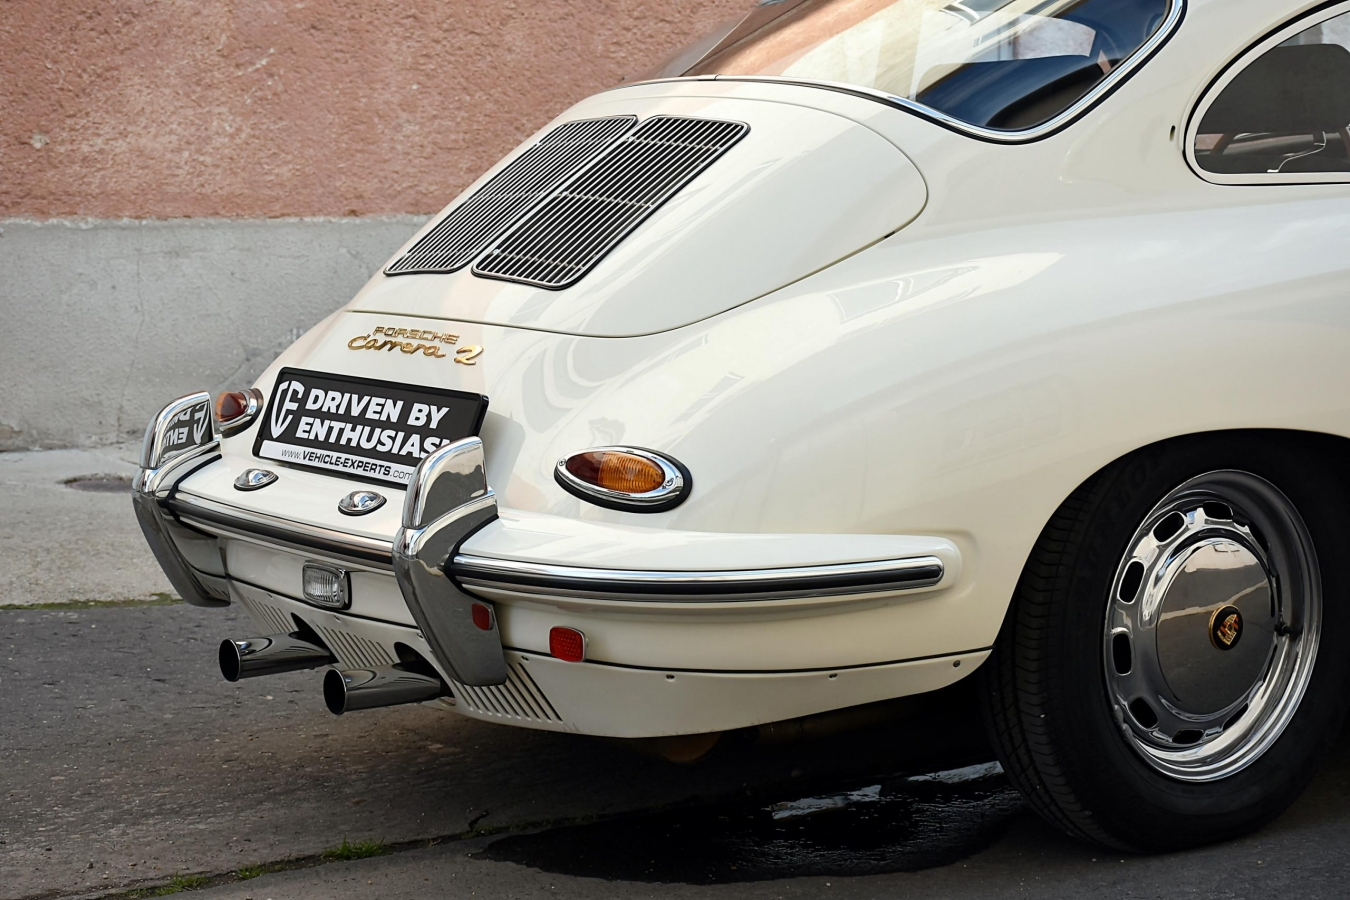 Porsche 356 C 2000 GS Carrera 2 Coupè 5